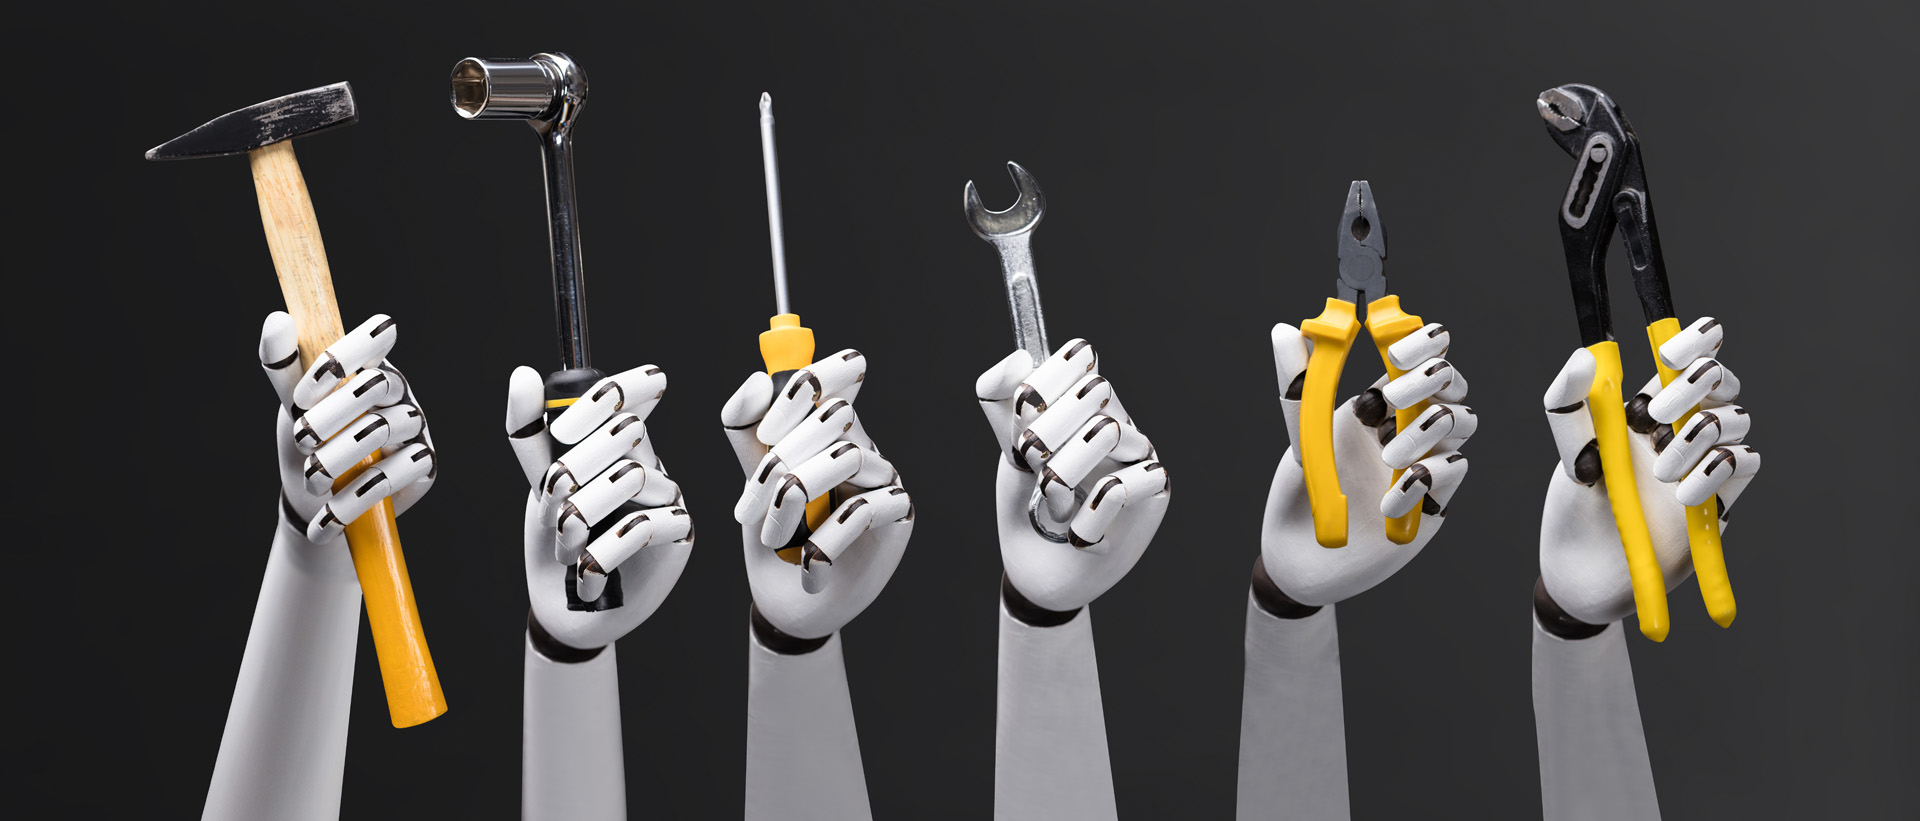 Robot Holding Work Tools